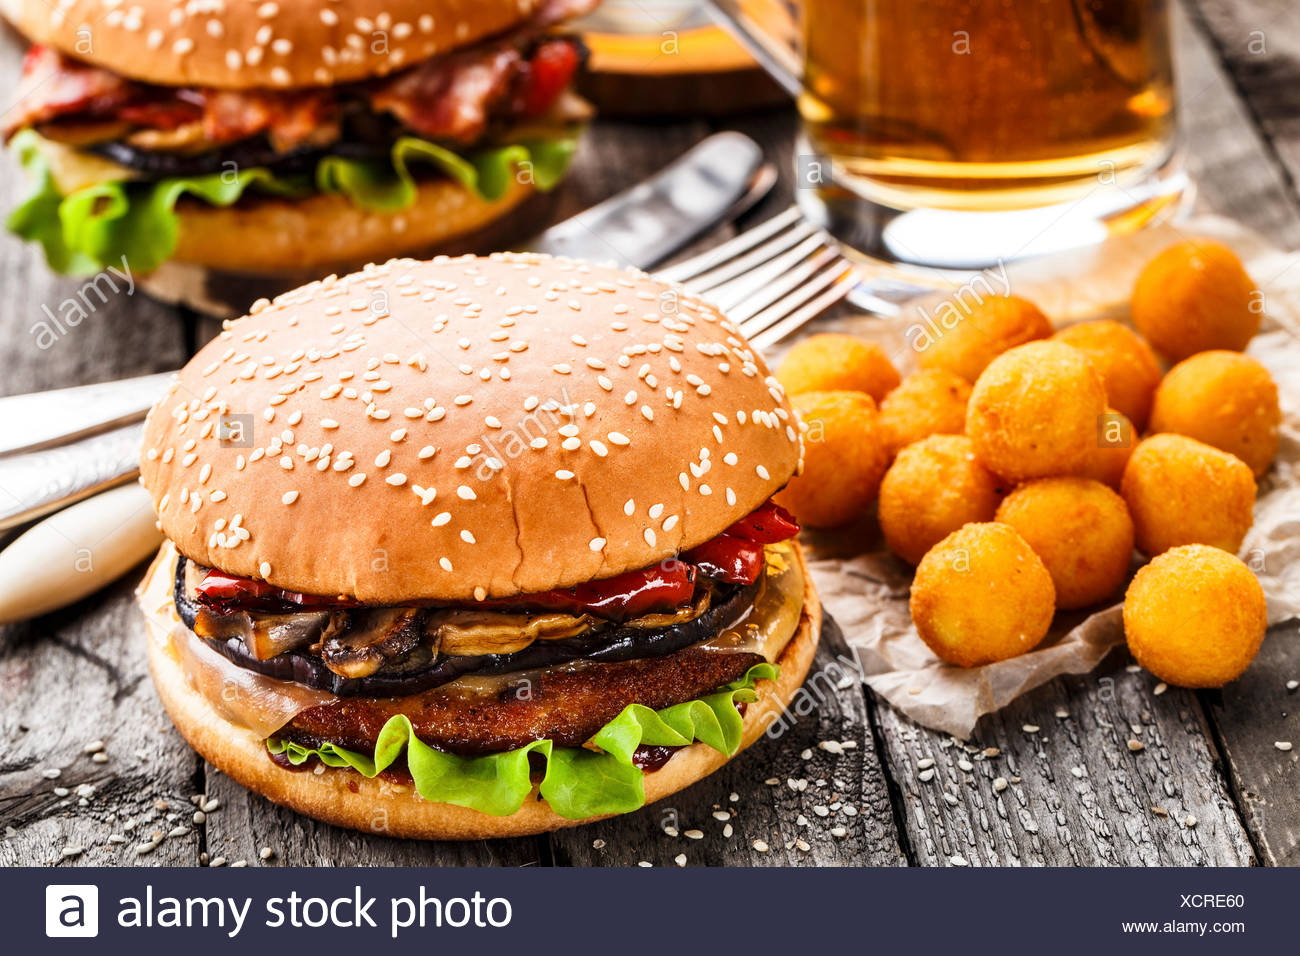 Delicious burgers with fried potato balls and beer on a rustic table - Stock Image